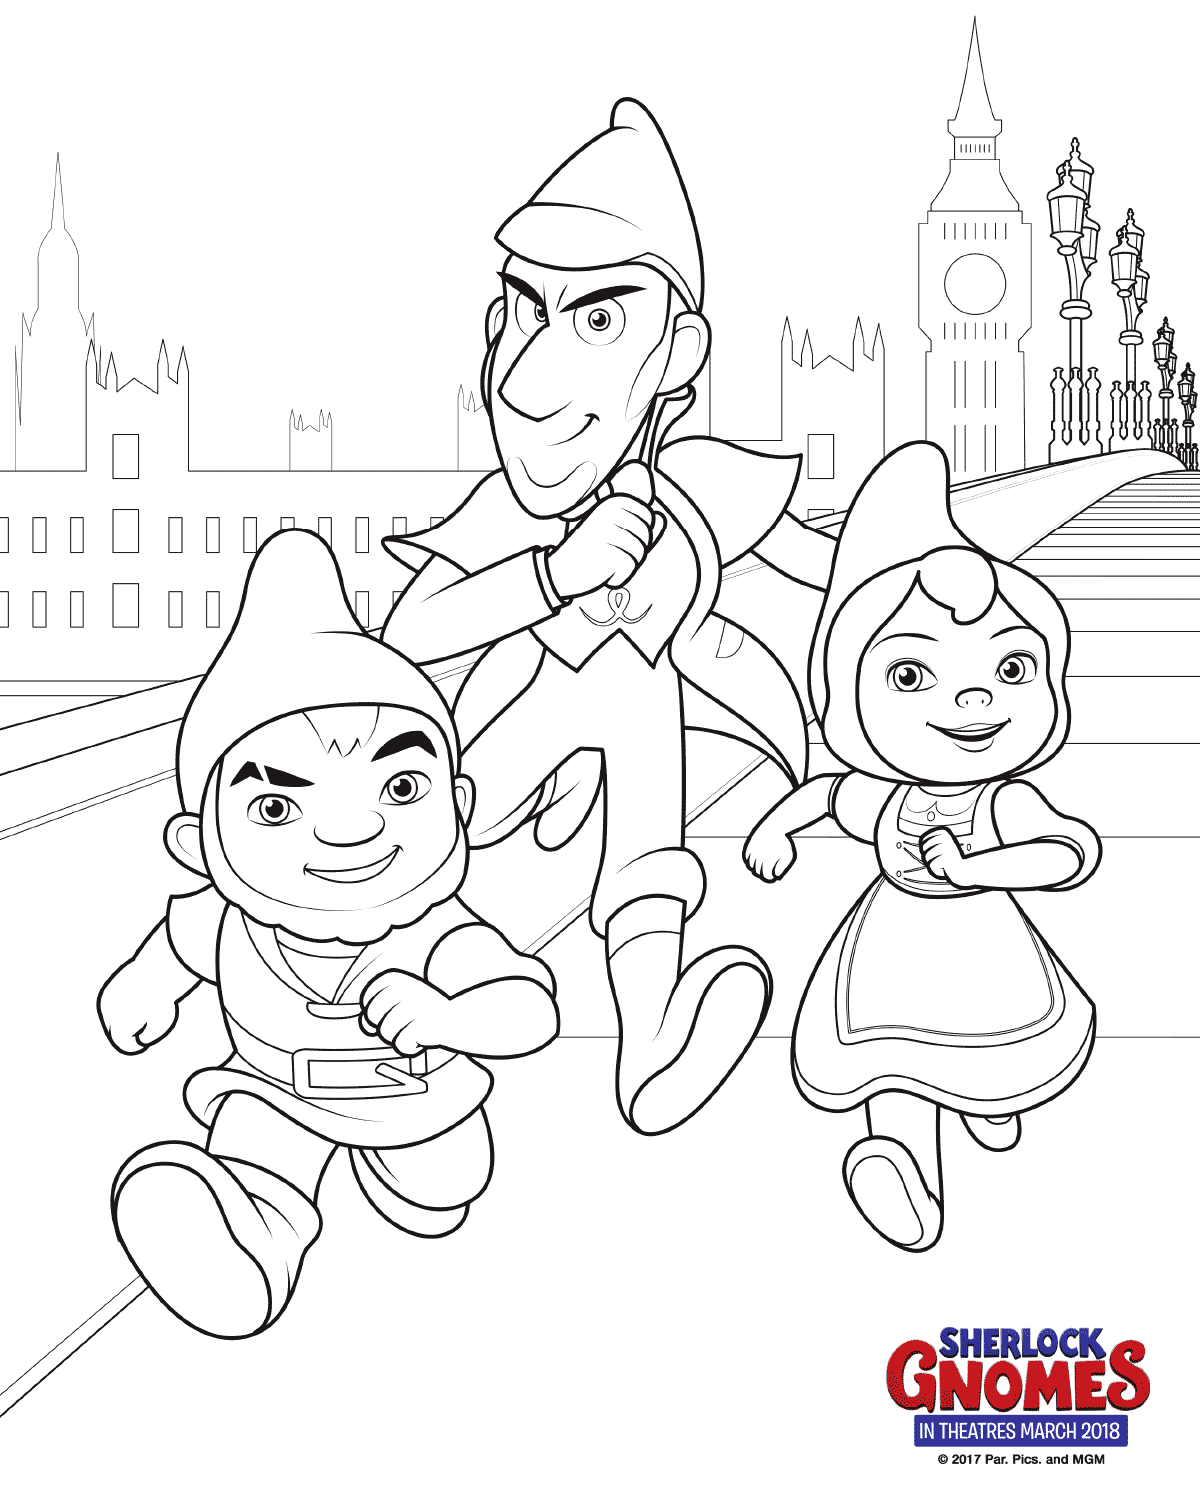 Free Printable Sherlock Gnomes Coloring Pages